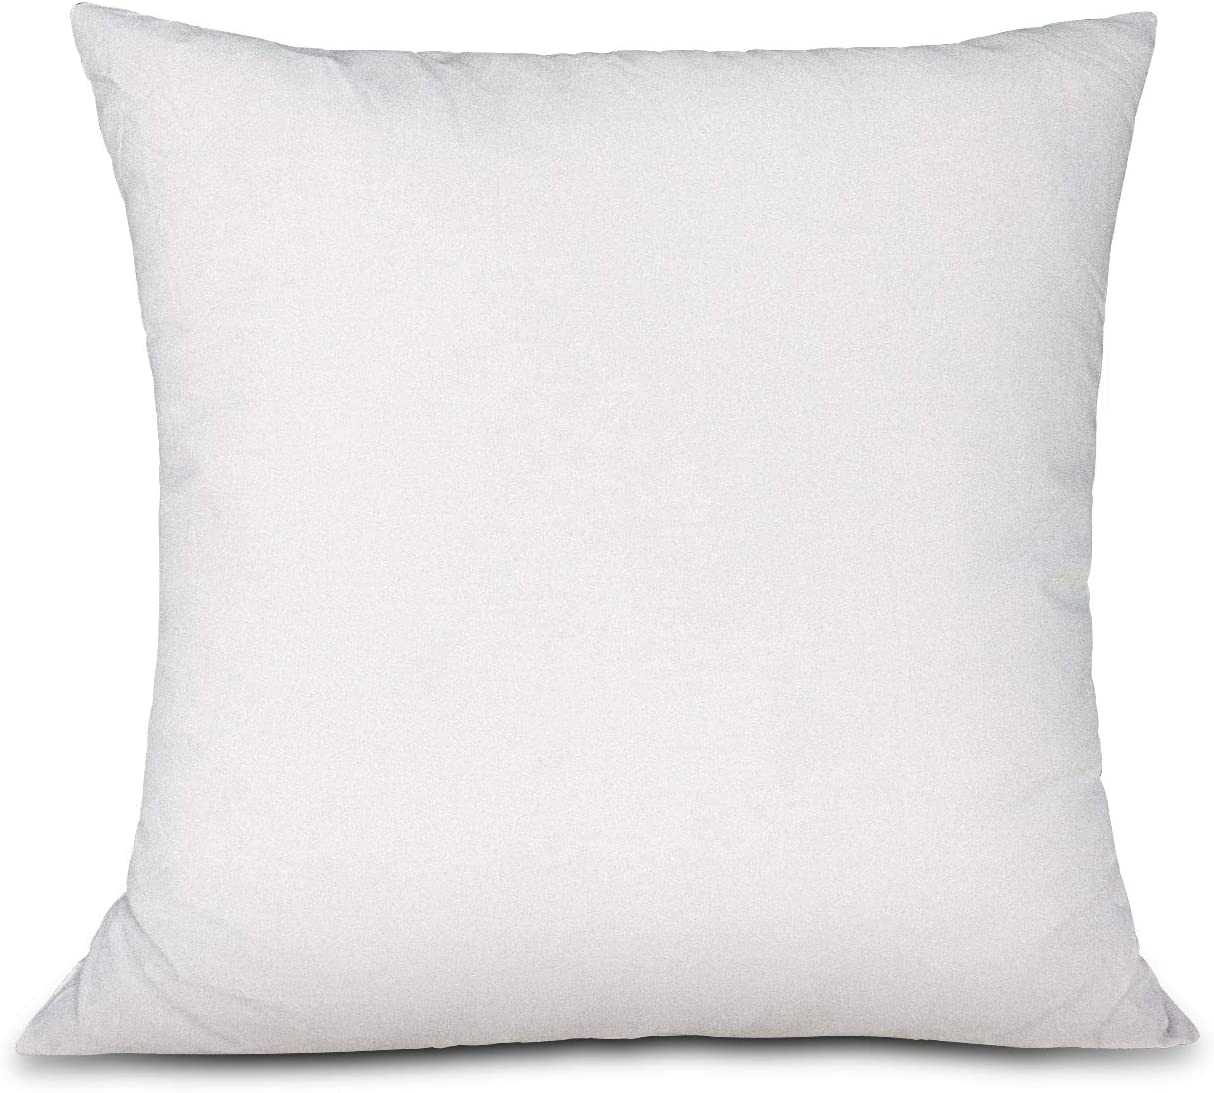 Acarharry Throw 2021 spring and summer new Pillow Insert Decorat Polyester-Fill At the price Supportive